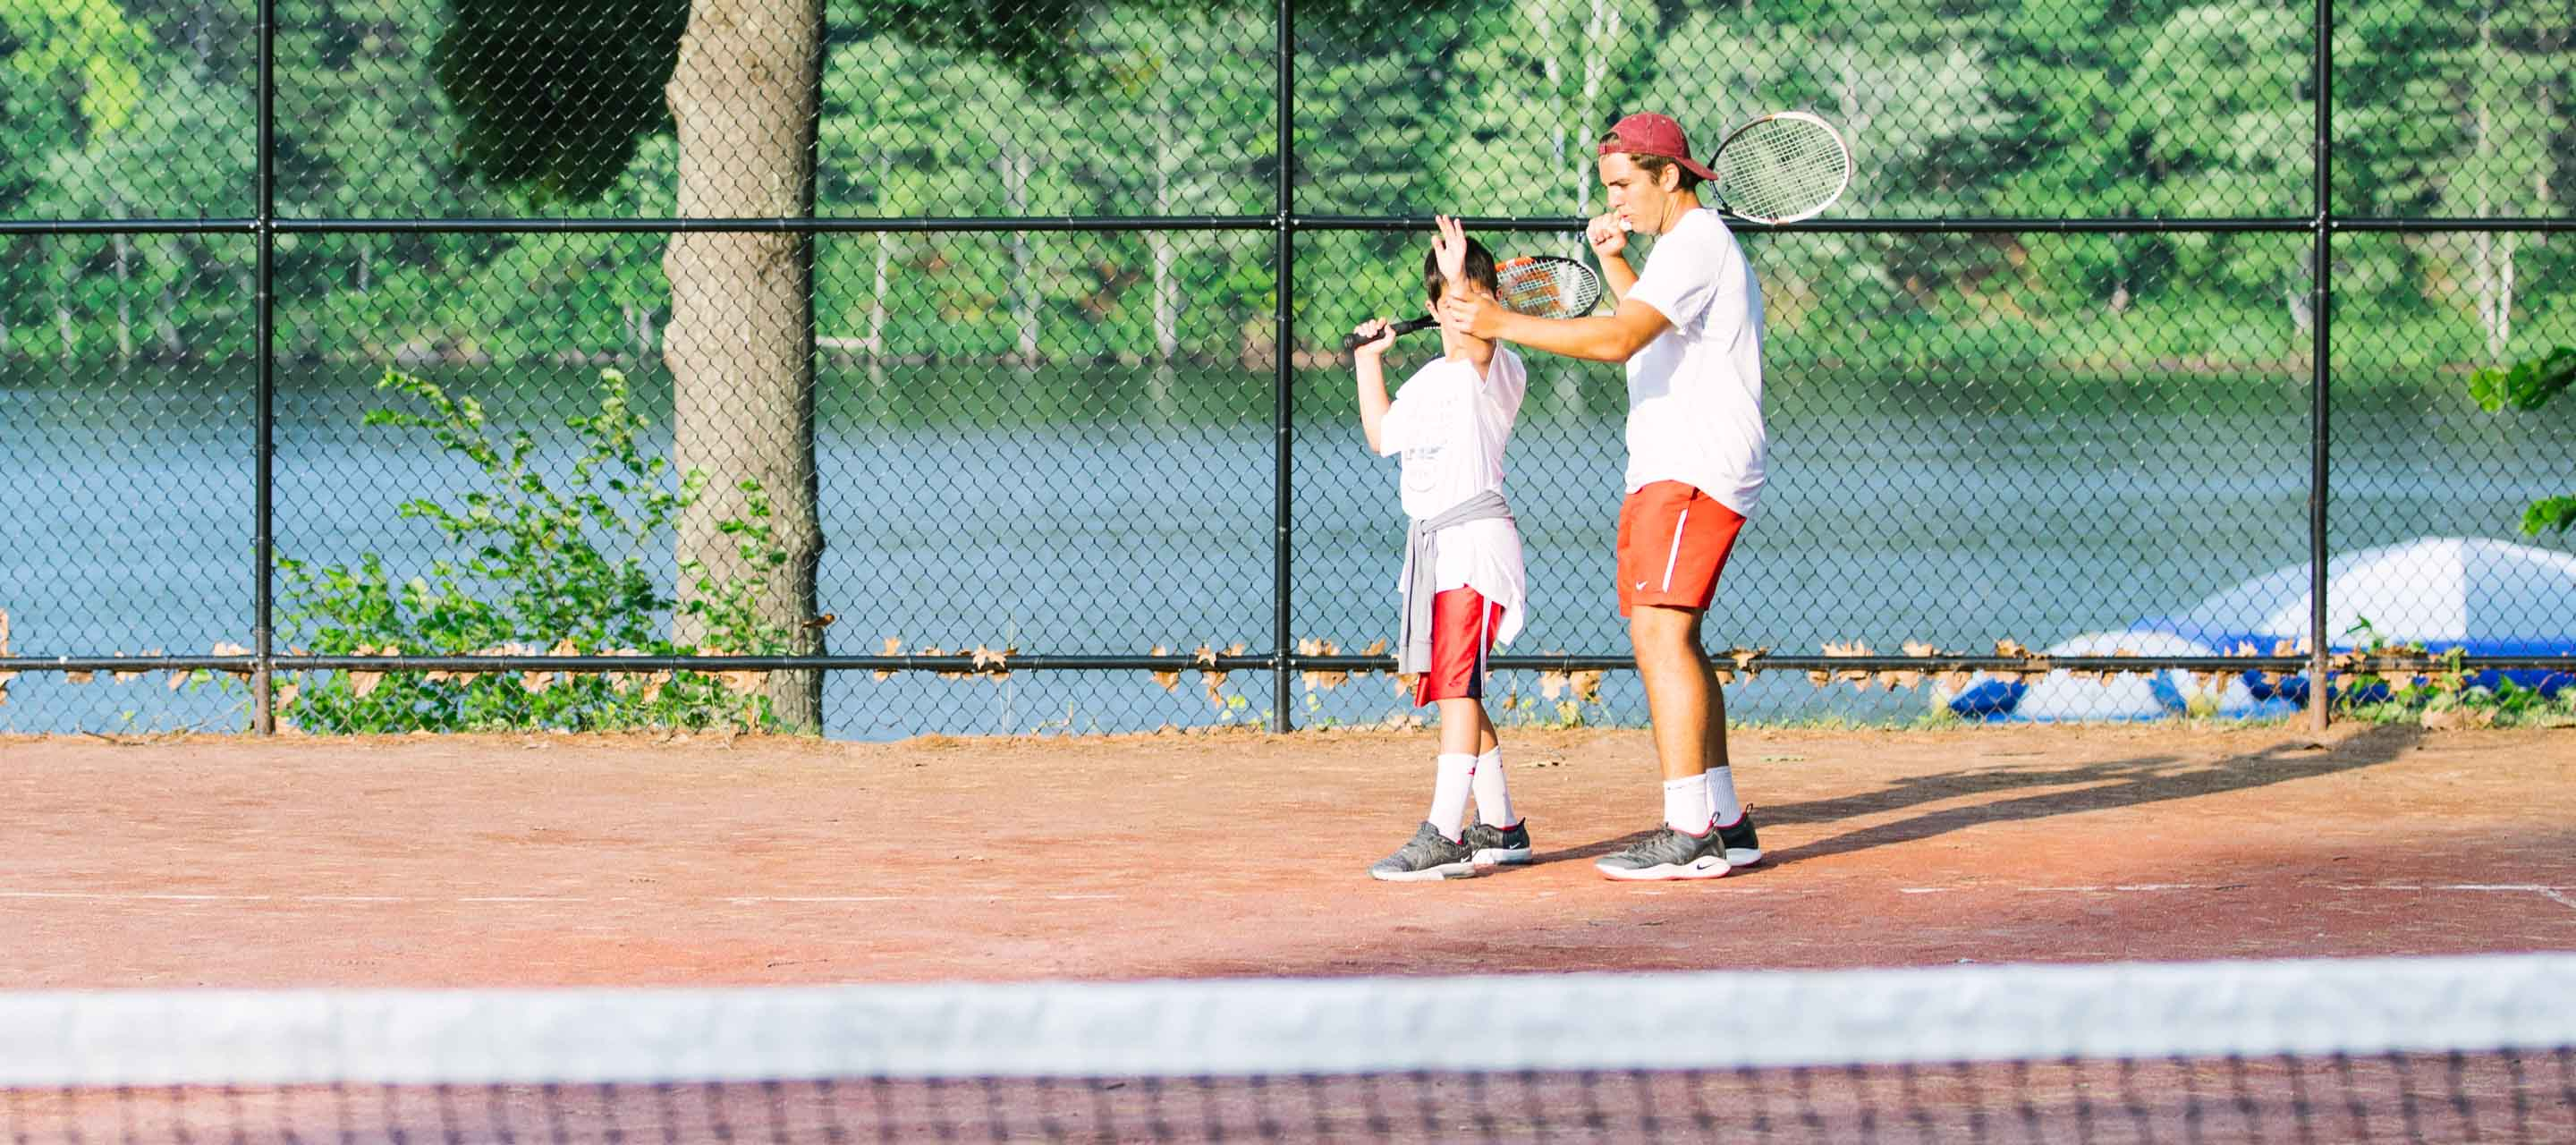 Tennis specialist teaching camper how to serve